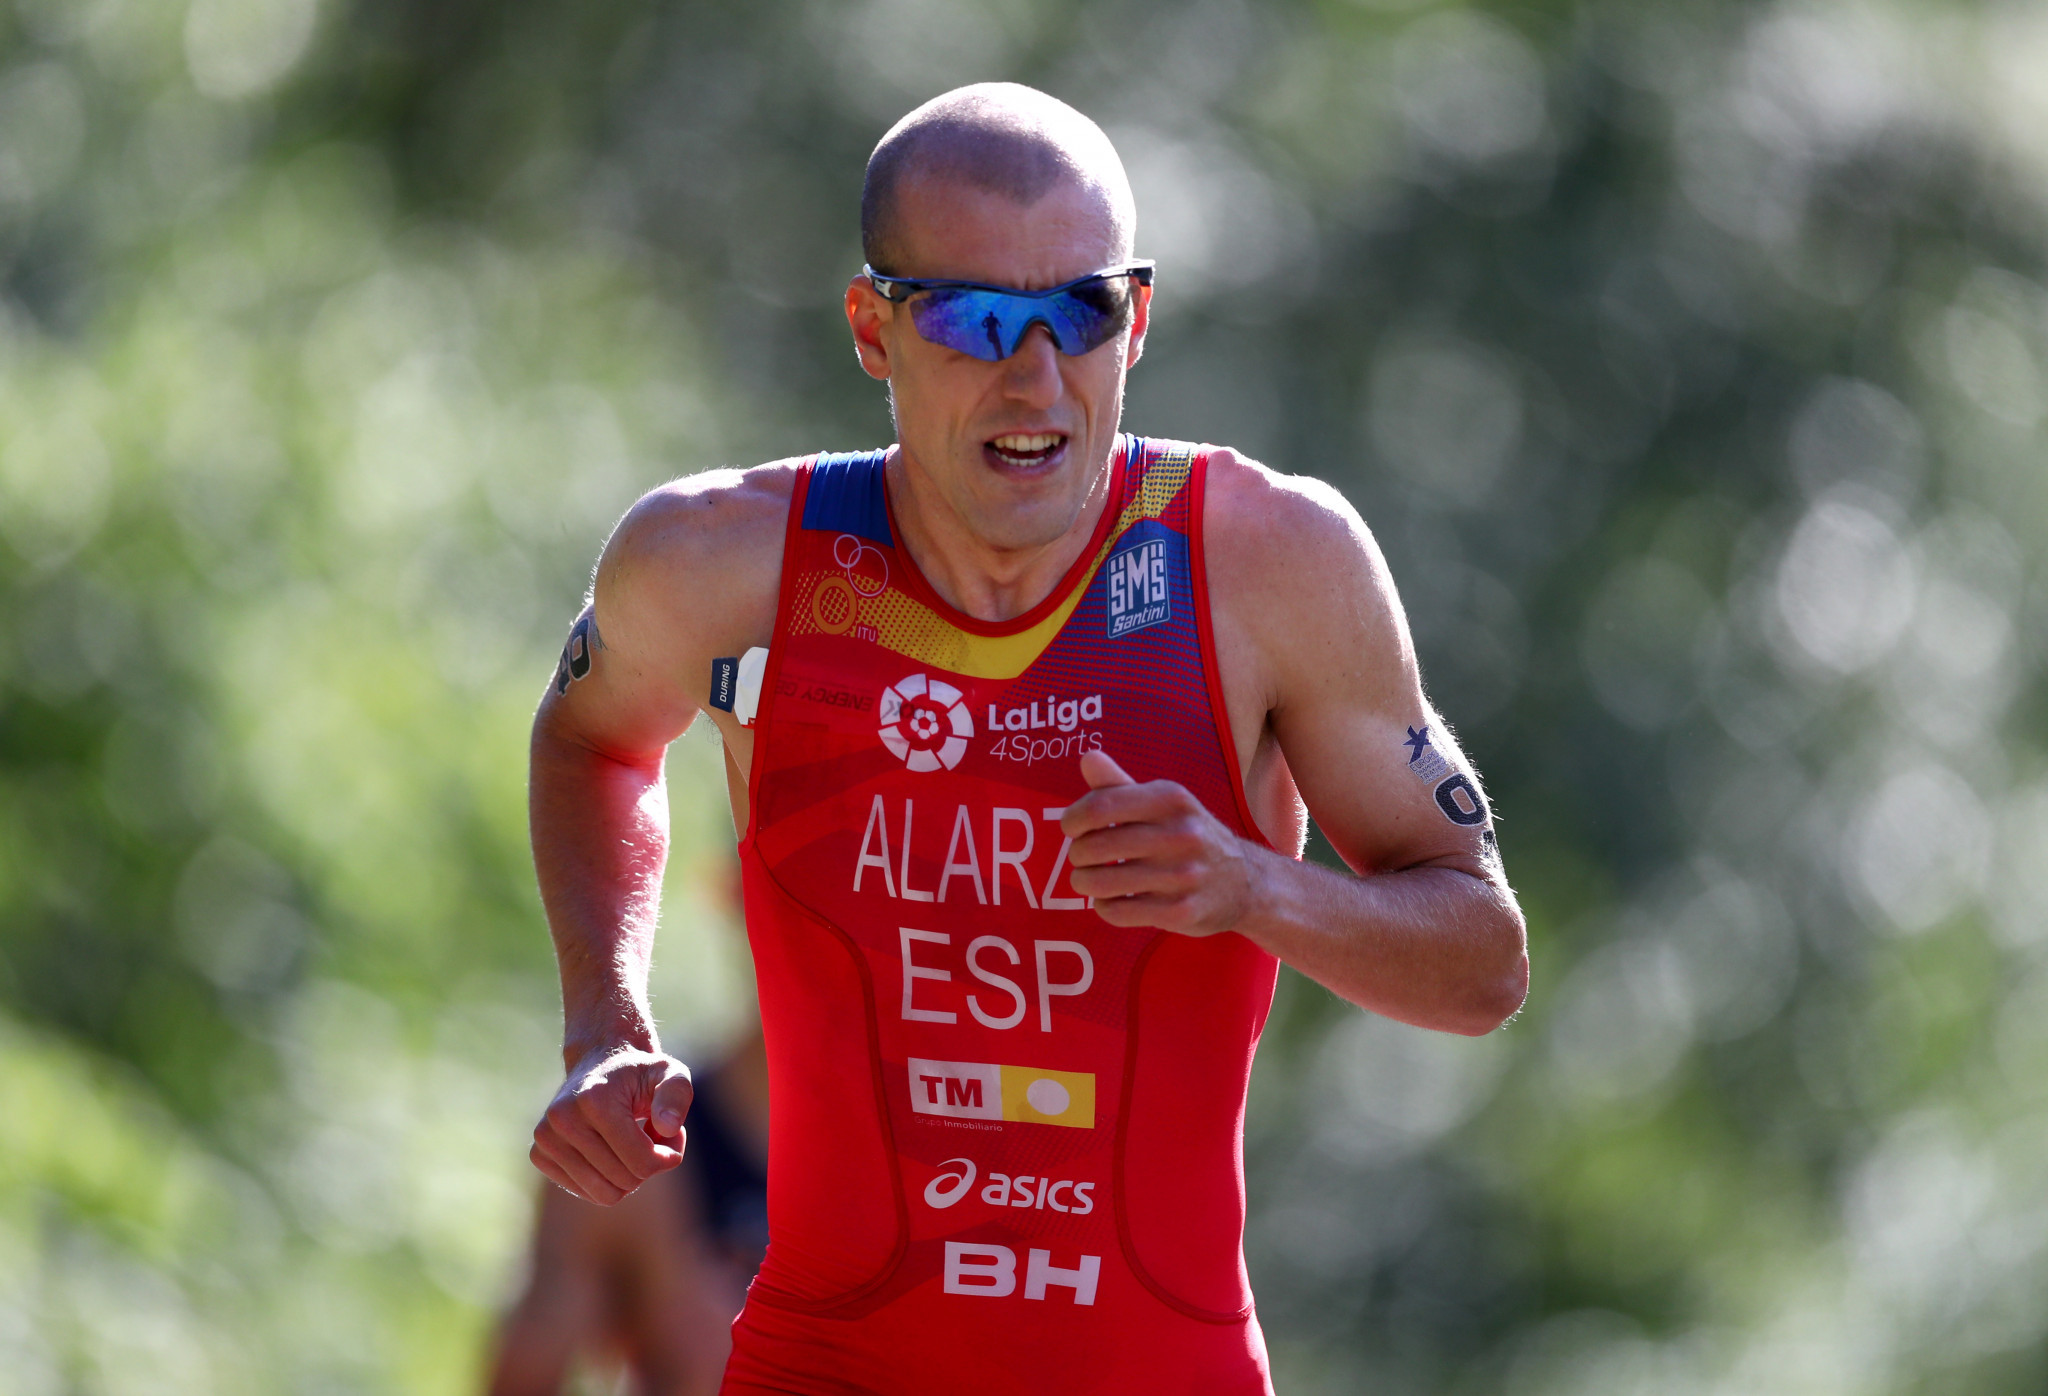 Spain's Fernando Alarza produced a blistering run to move into the silver medal position ©Getty Images